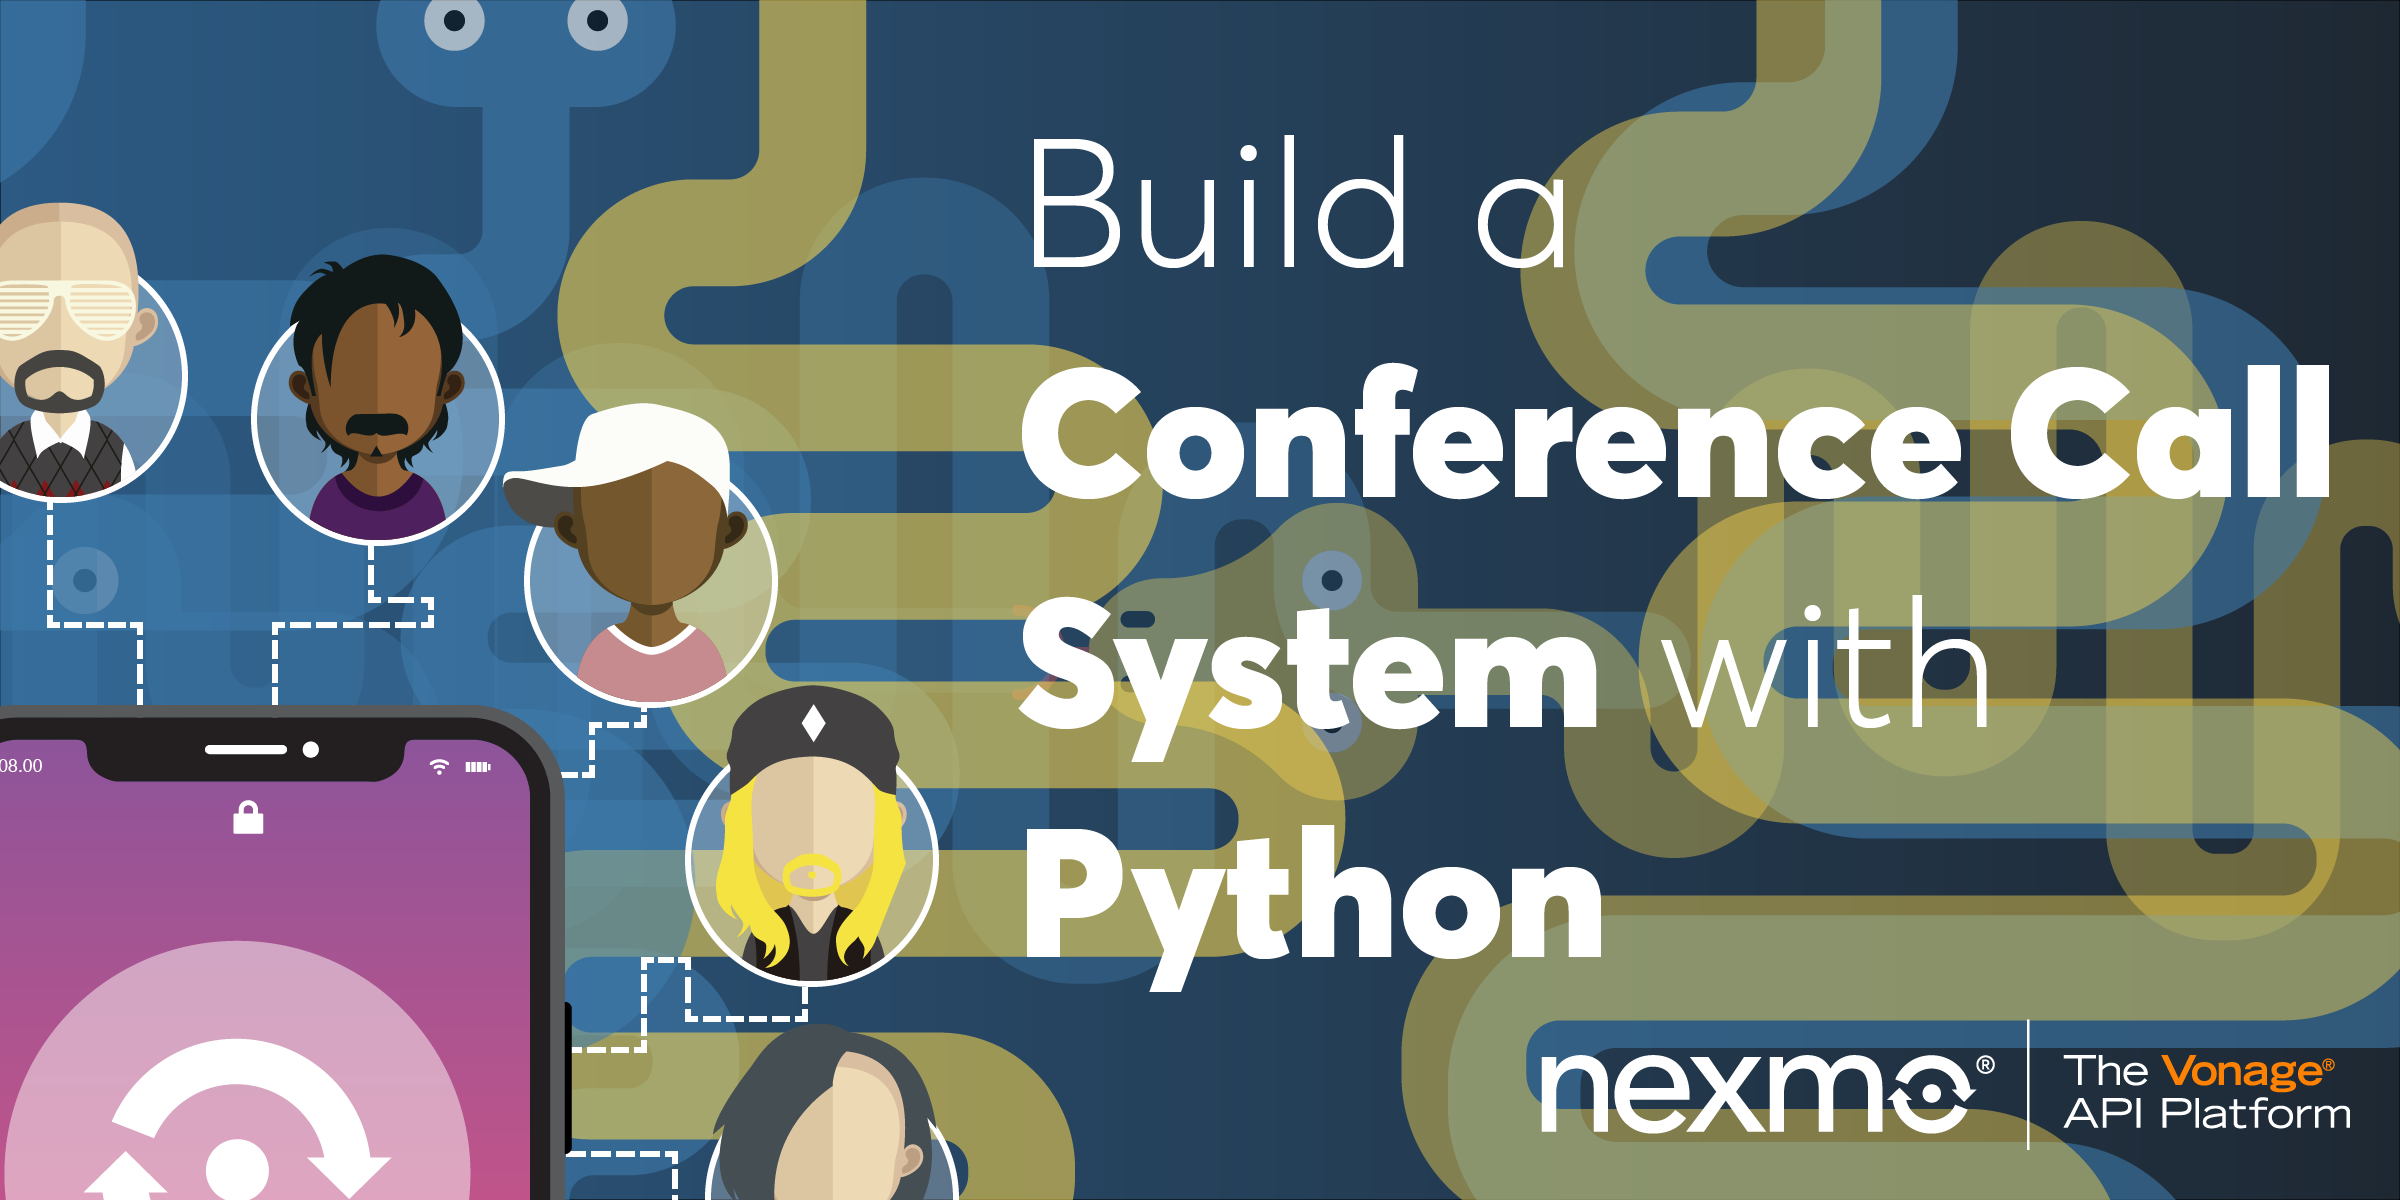 Build a Conference Call System with Python - Nexmo Developer